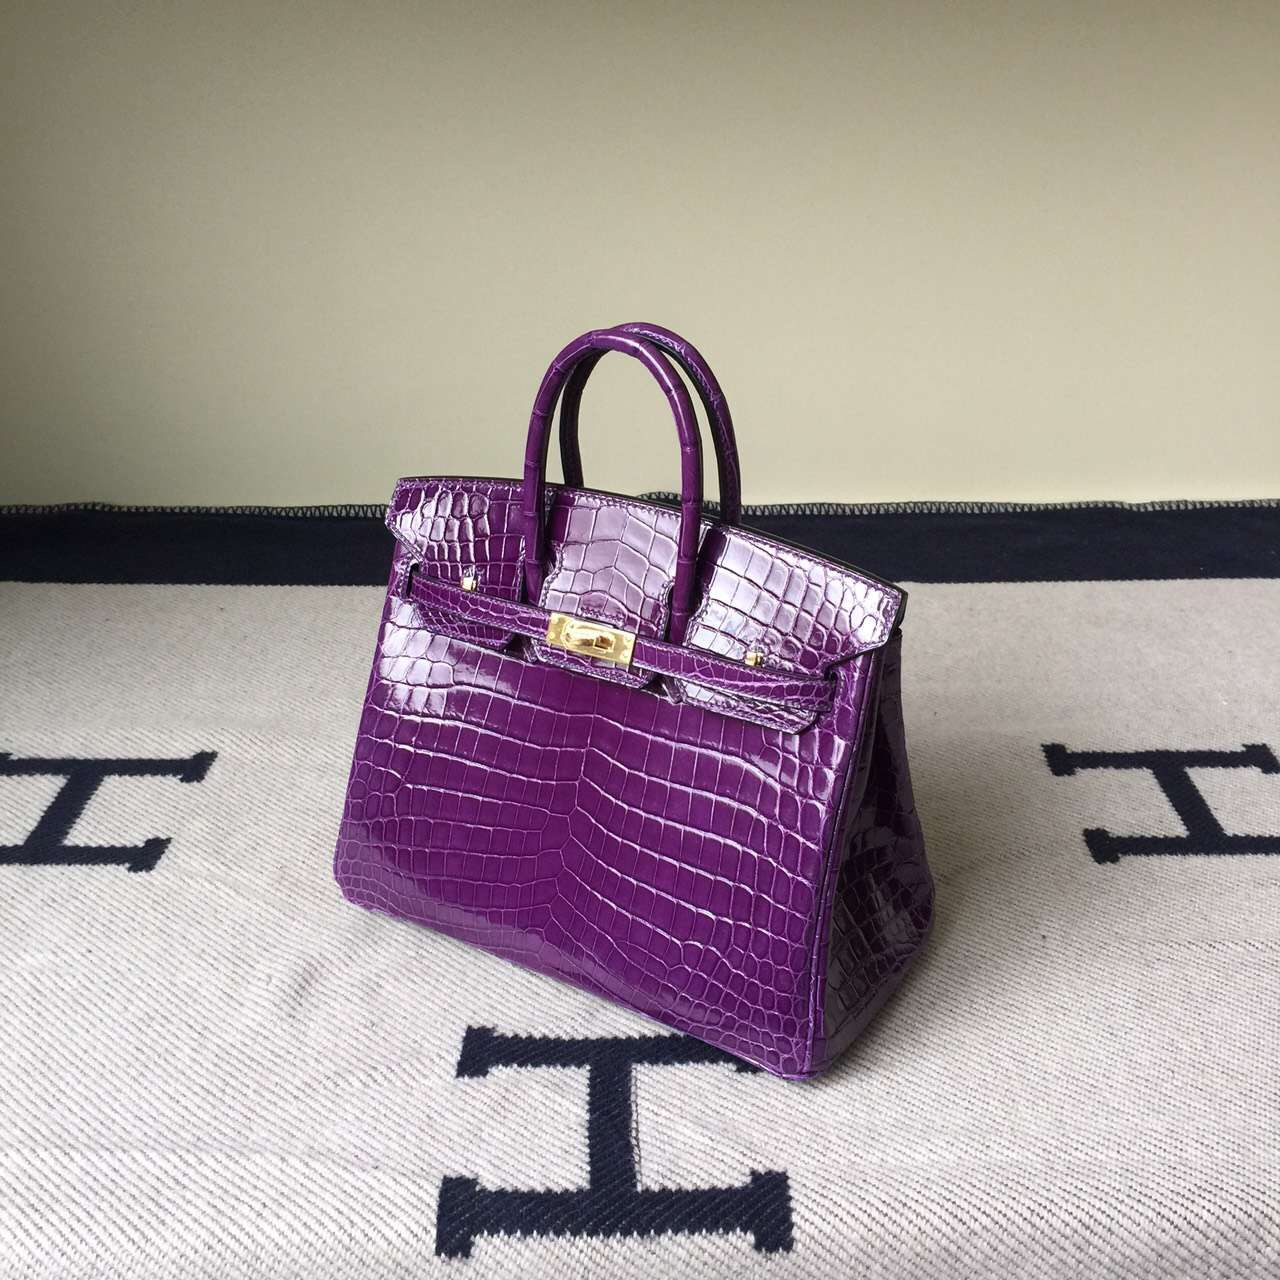 Hand Stitching Hermes Birkin Bag 25cm in Violet Purple Crocodile Leather